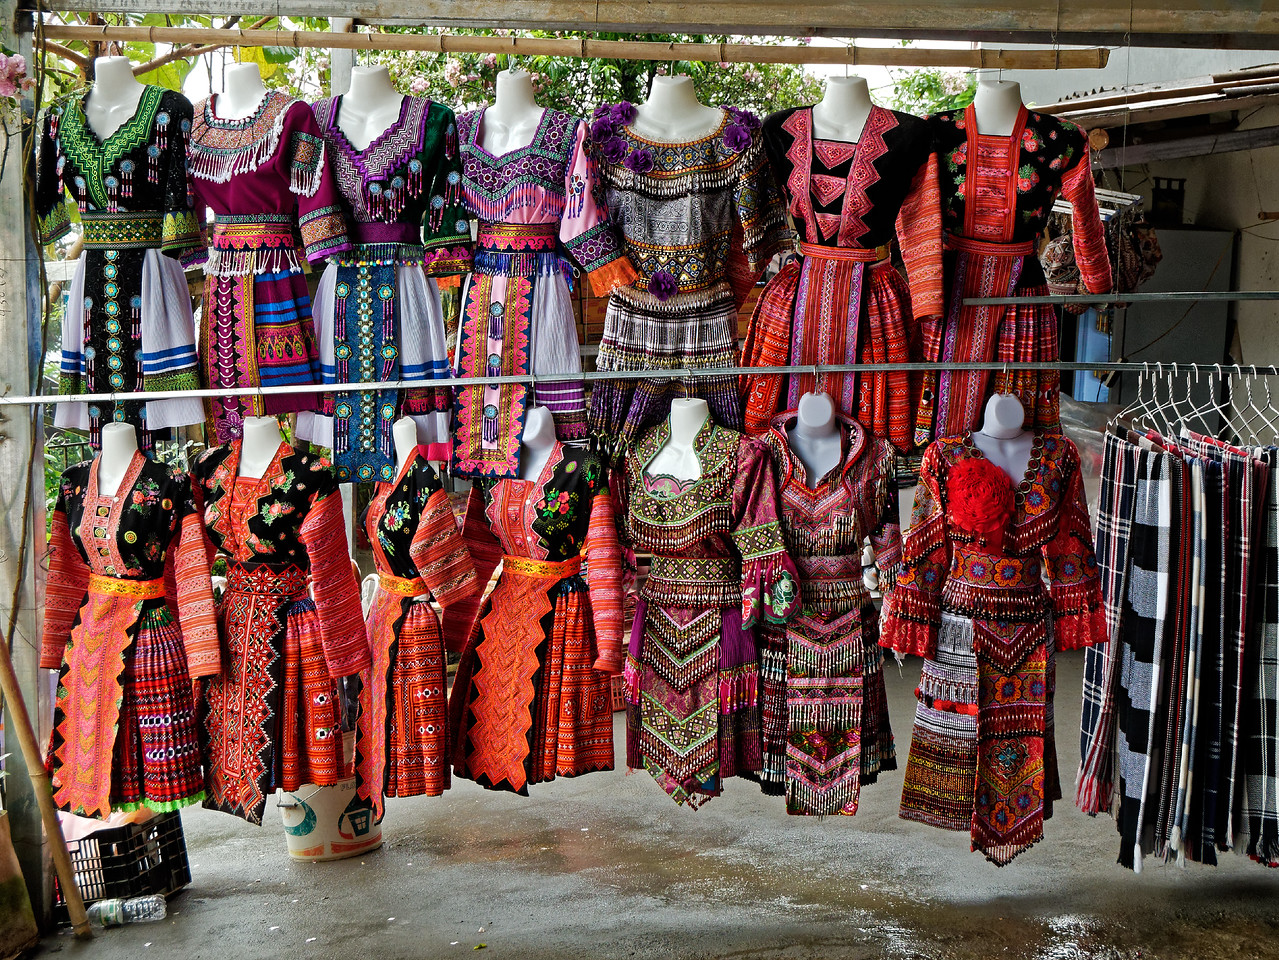 Hmong hill tribe dresses for sale or for rent